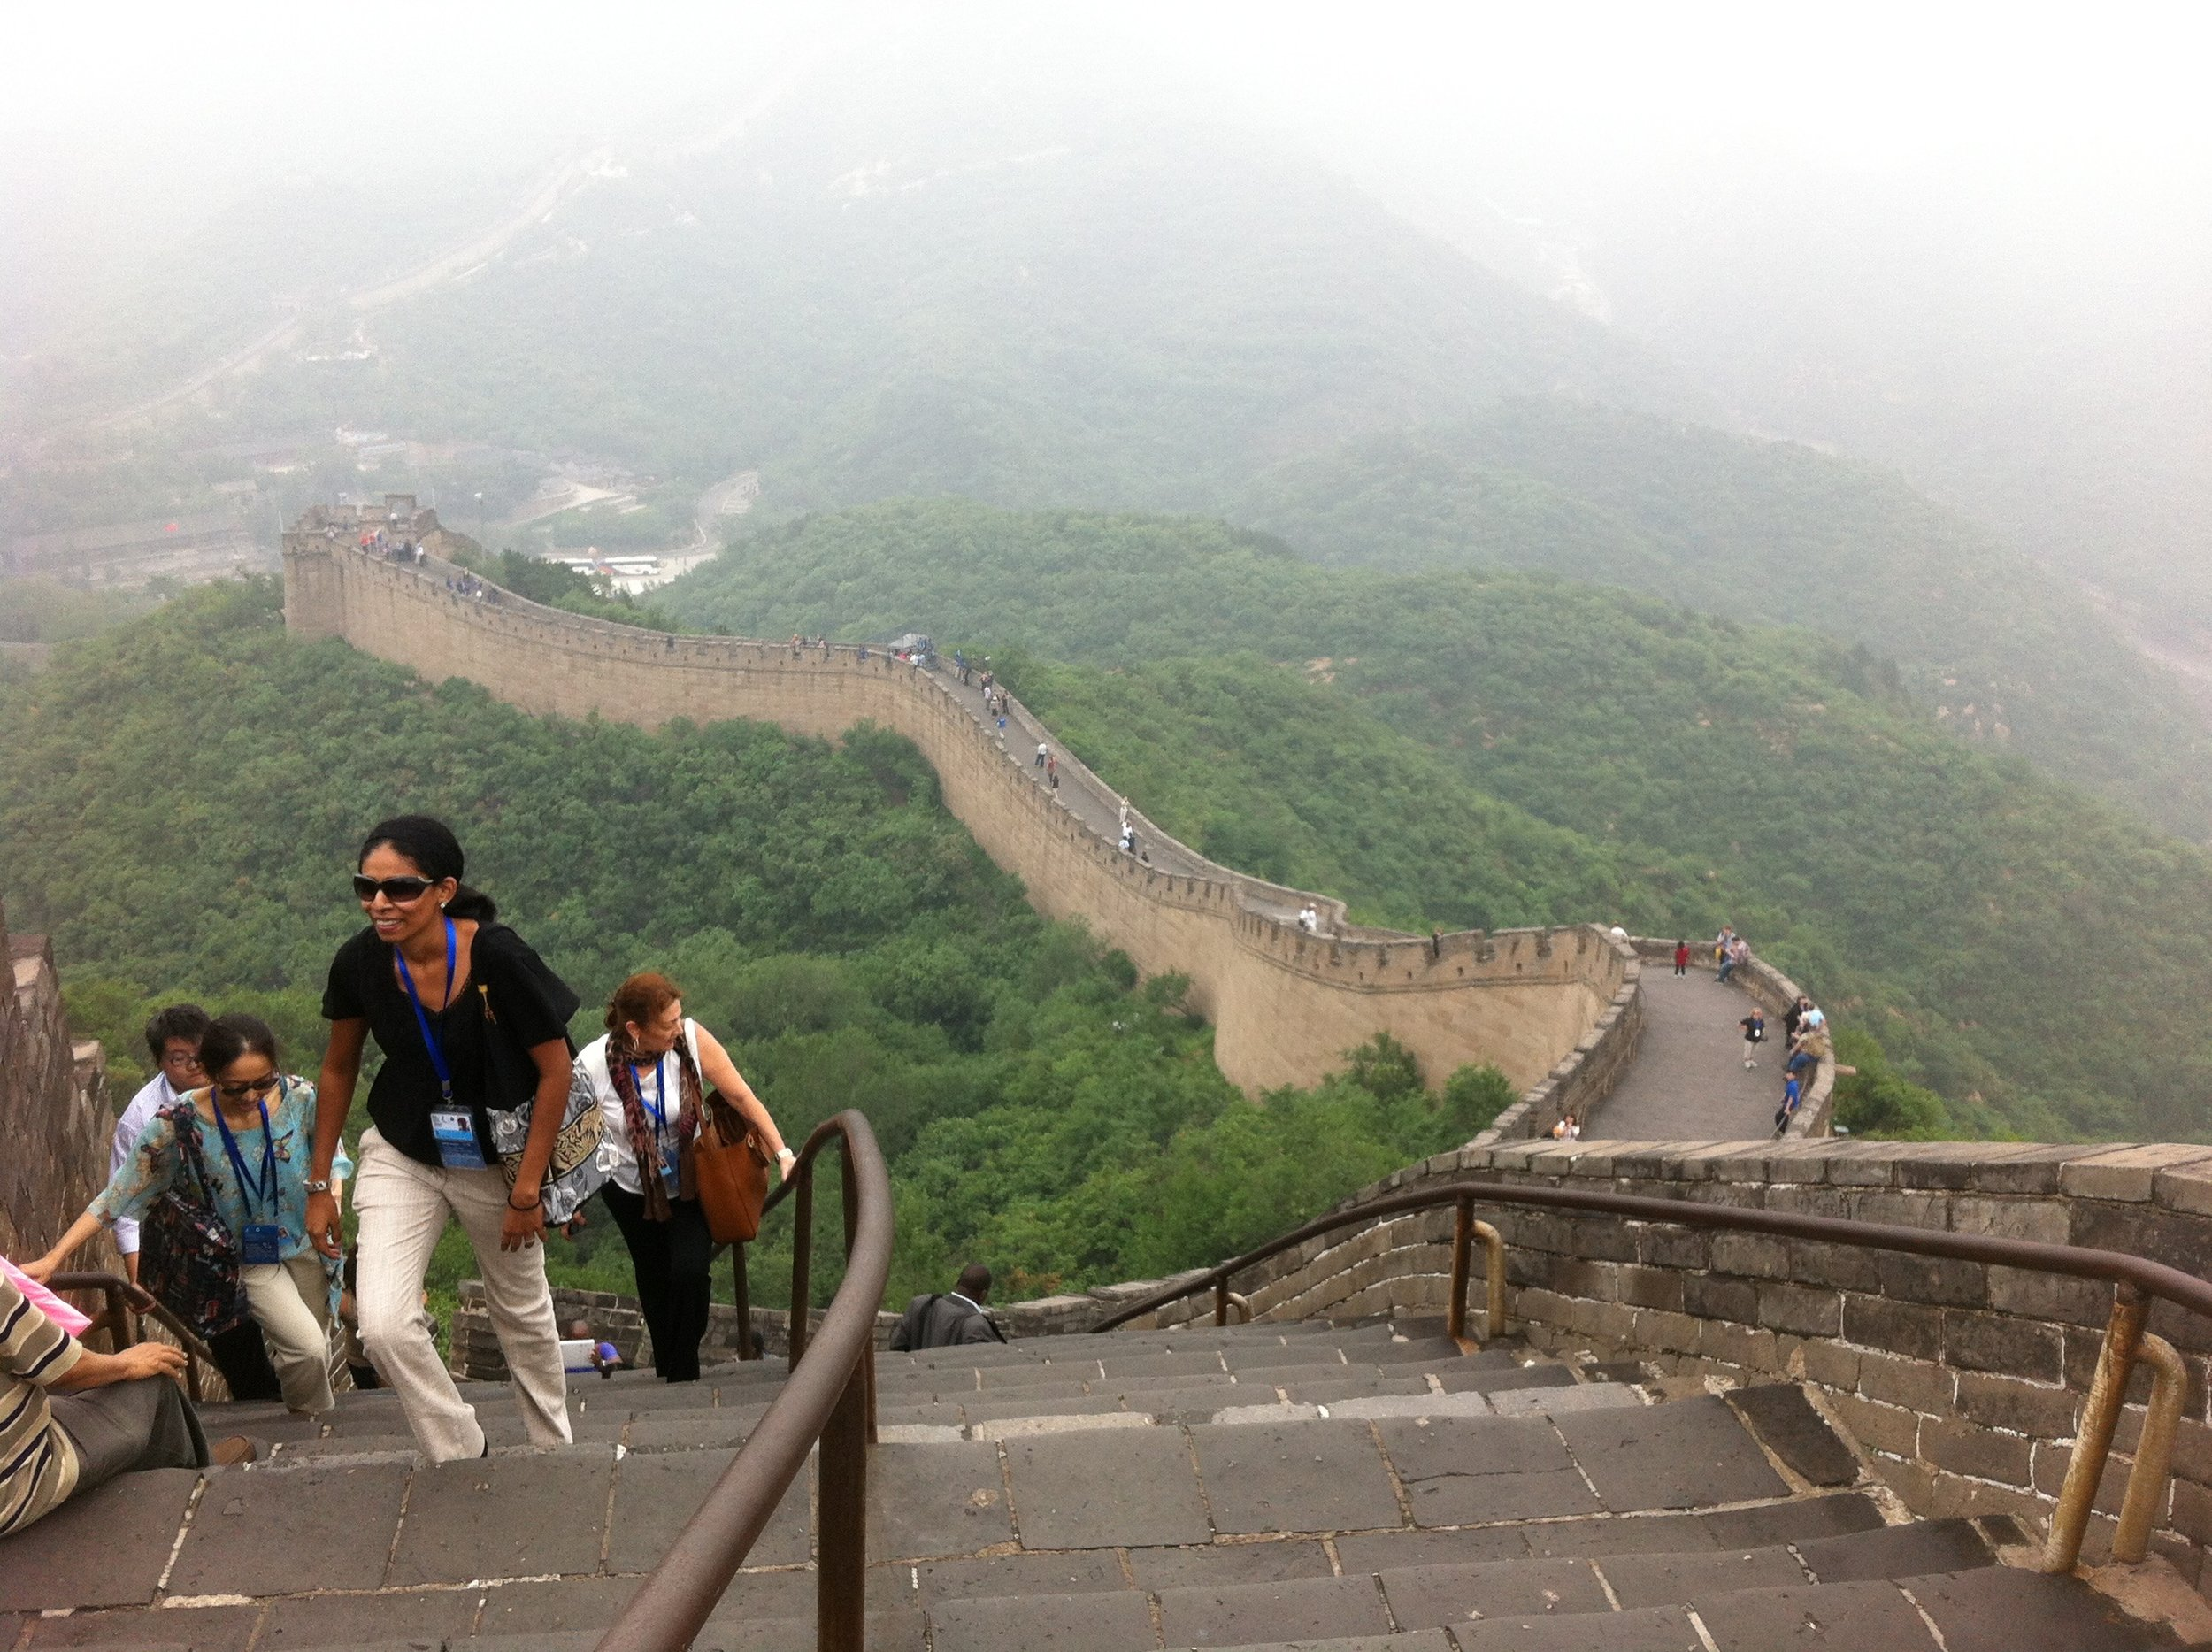 This was actually the least crowded photo I could get at Badaling. It took me a long time to get a picture with so few people.